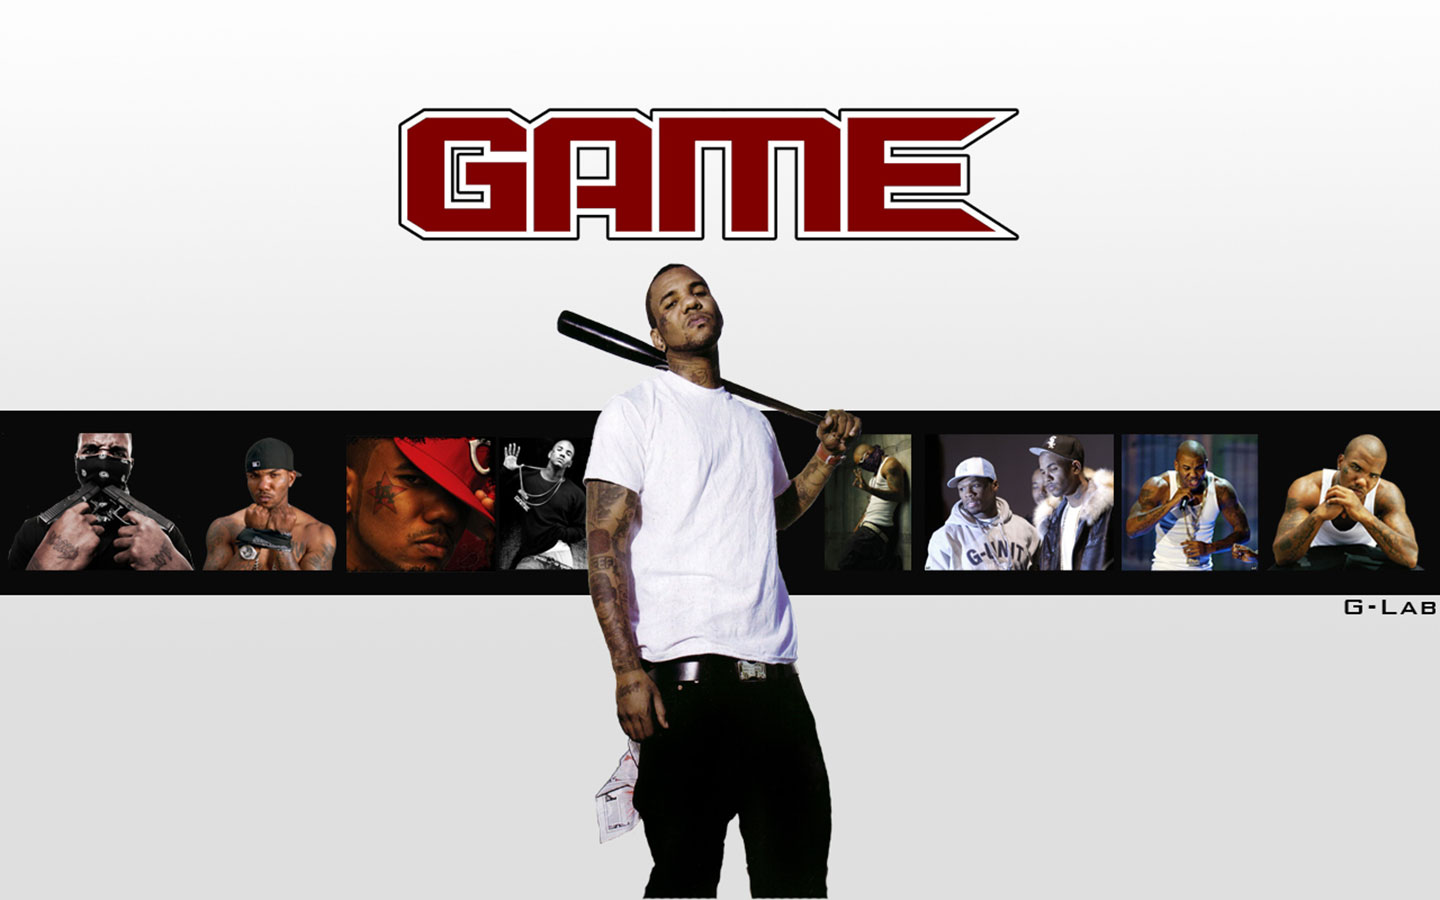 The Game Rapper Logo 14381 Hd Wallpapers in Games   Imagescicom 1440x900